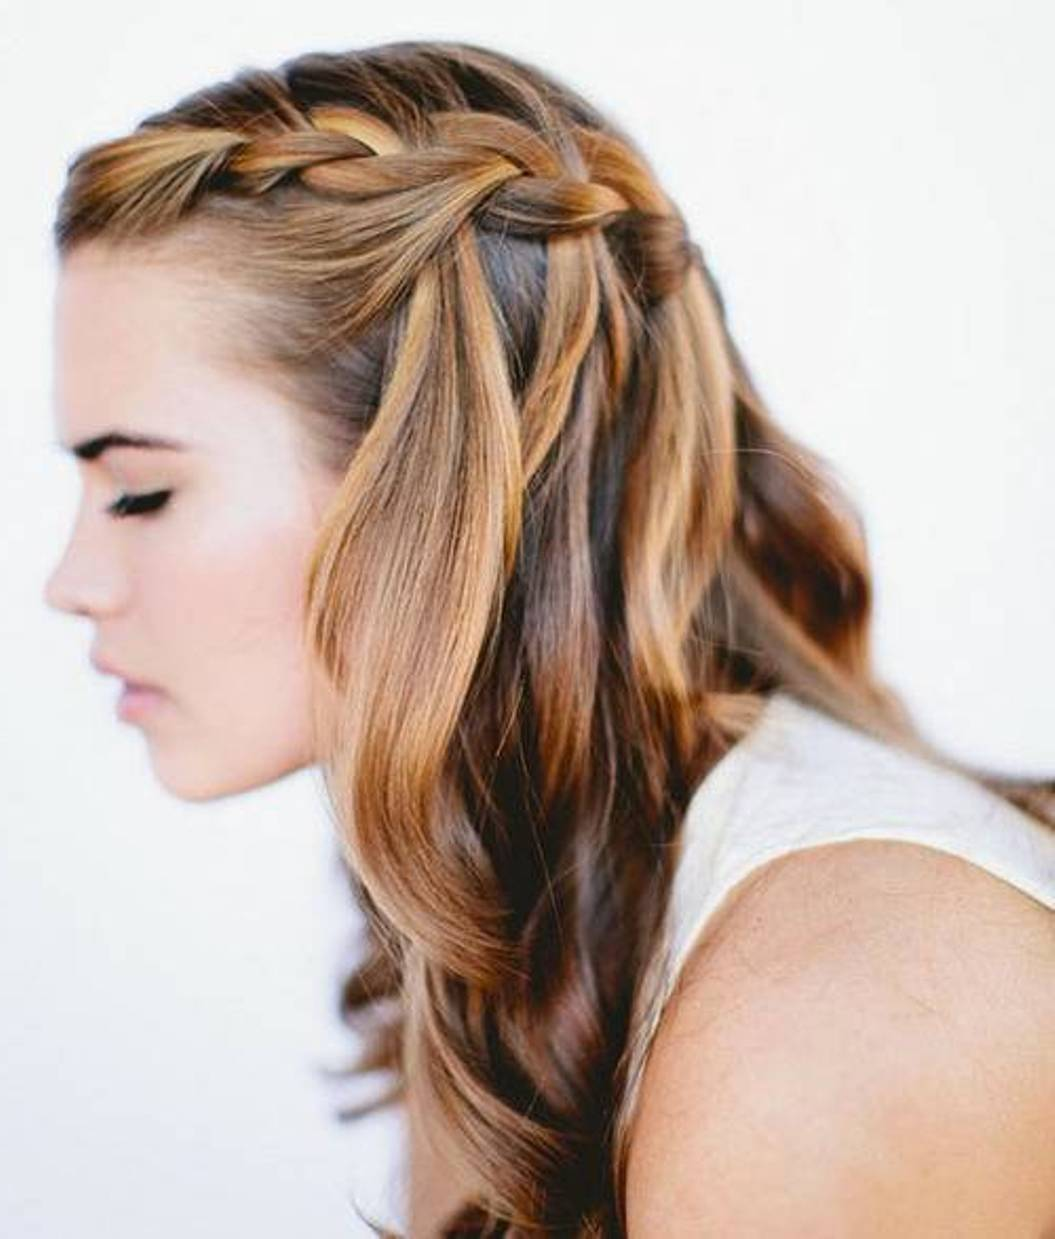 braided hairstyles for prom : Braided Hairstyles For Prom And Parties LONG HAIRSTYLES